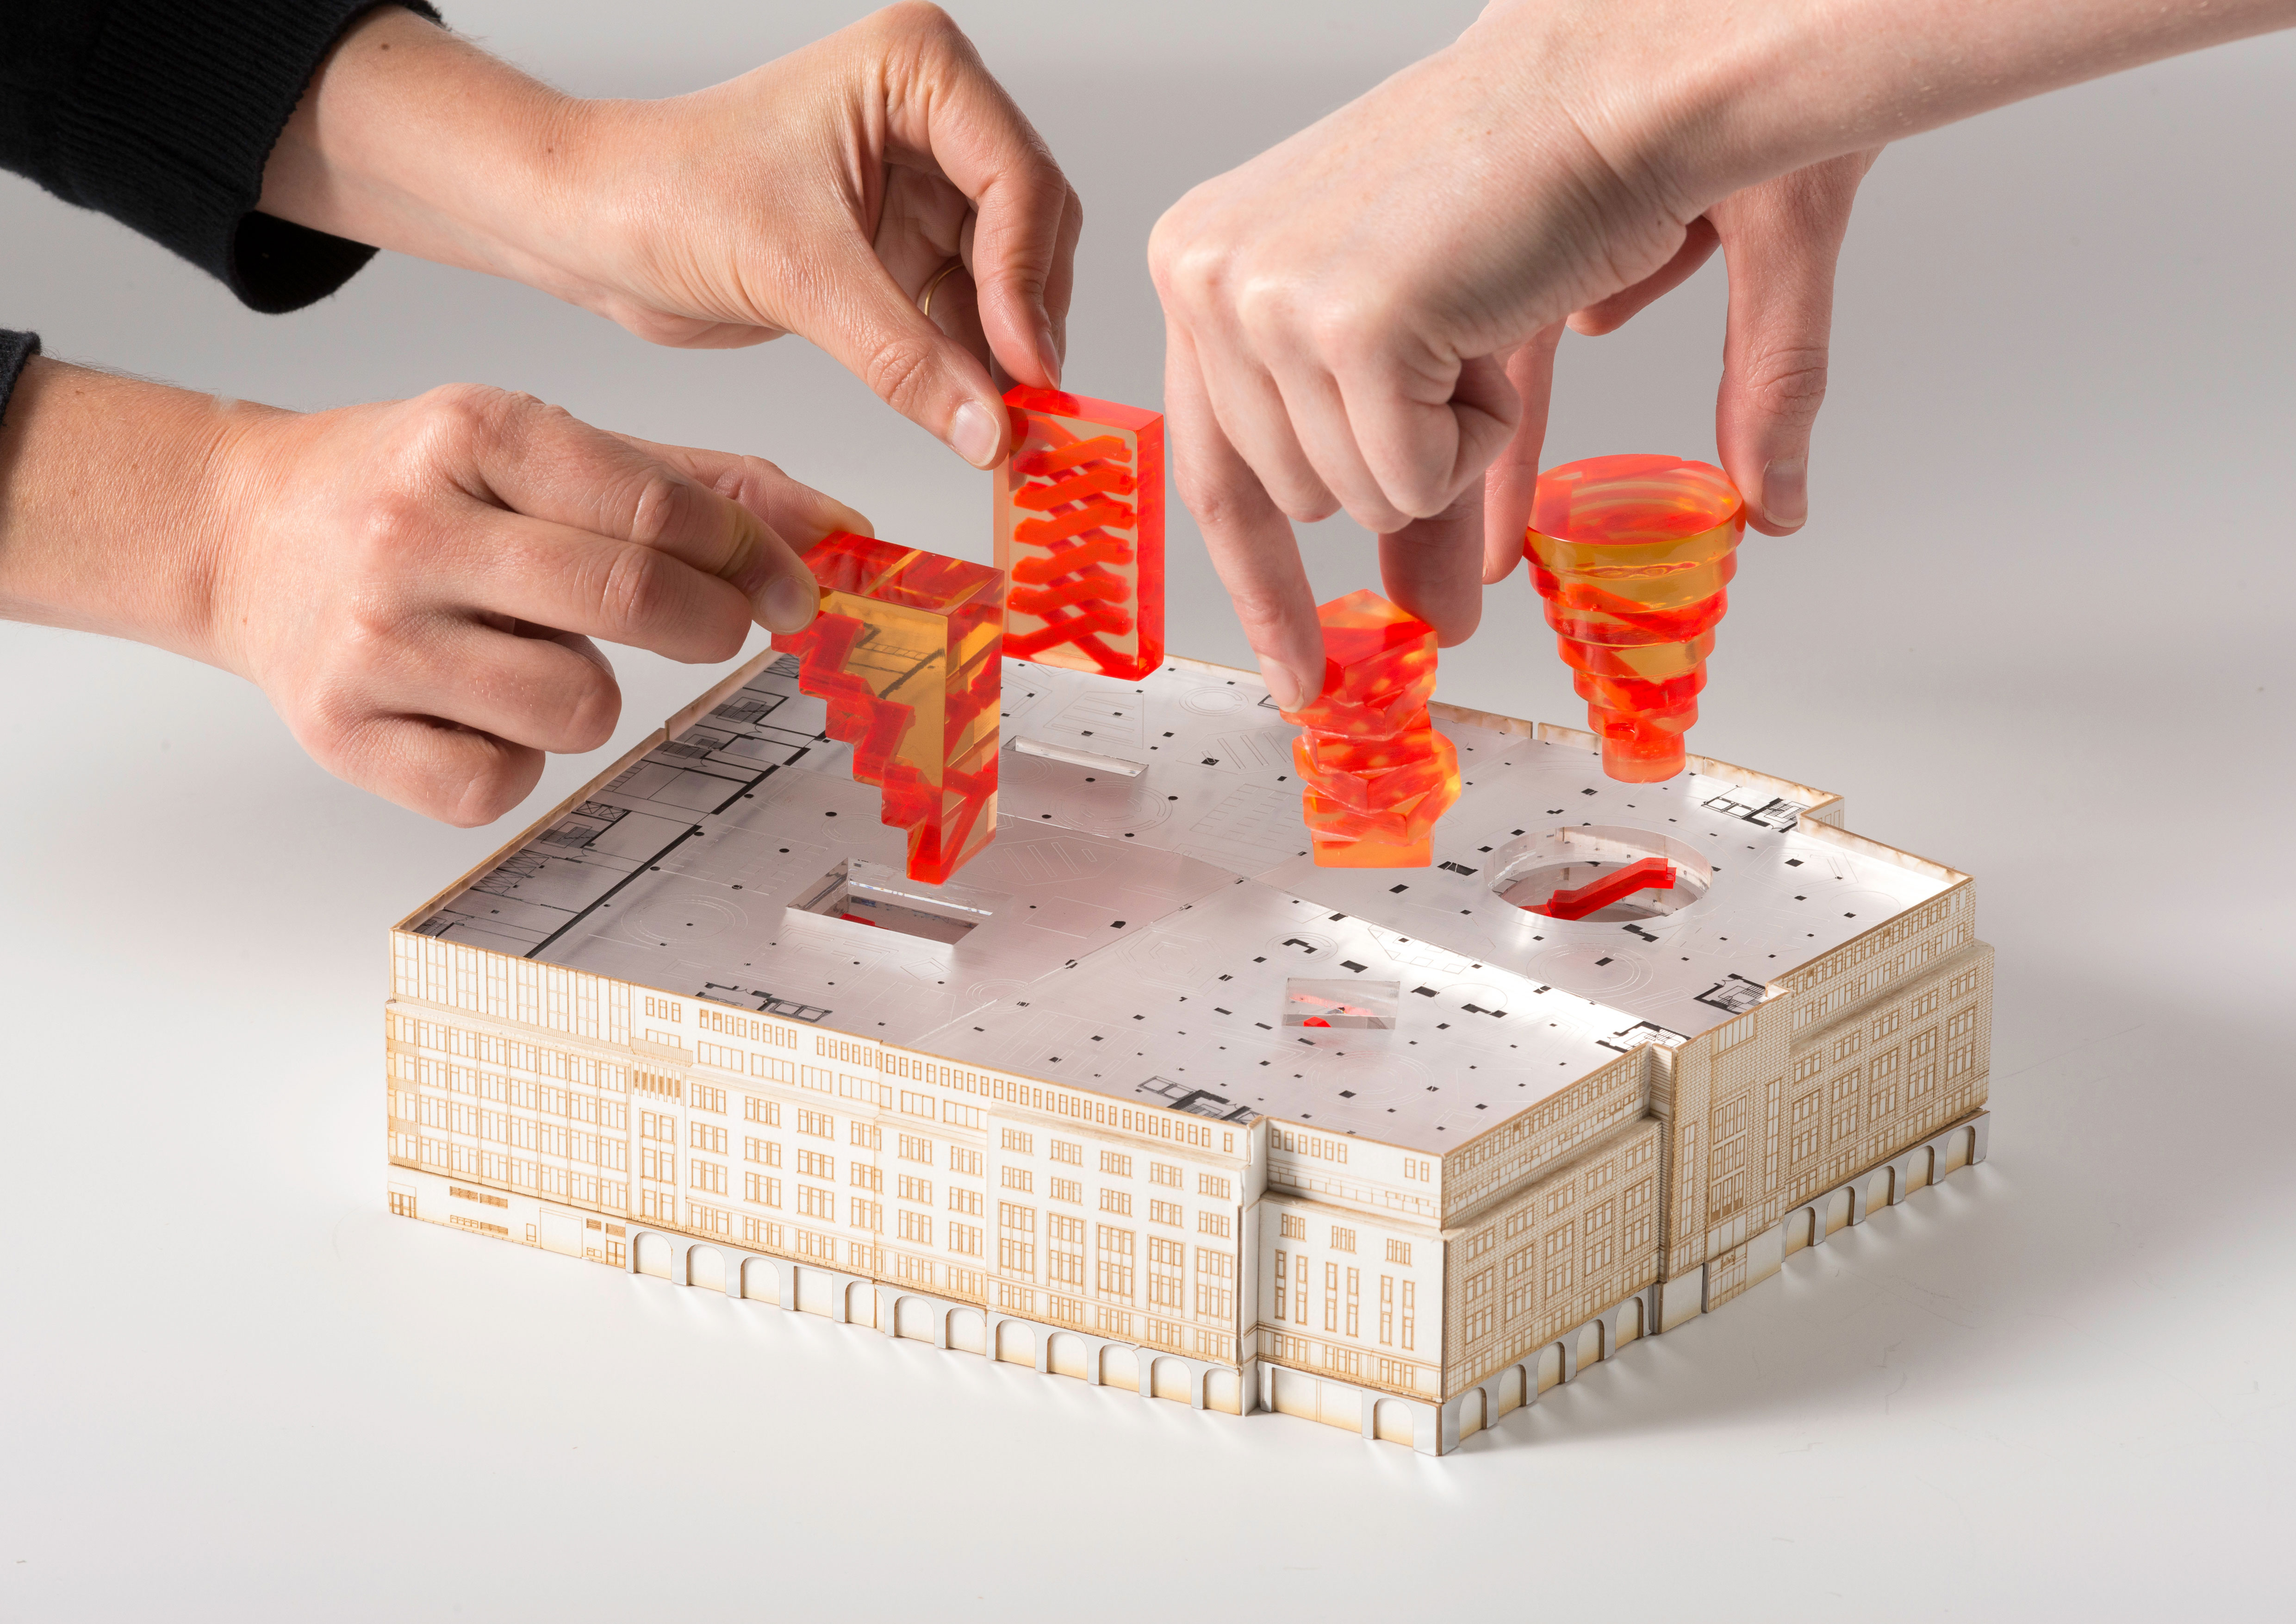 OMA,-Concept-model-of-the-Kaufhaus-des-Westens-(KaDeWe)-renovation